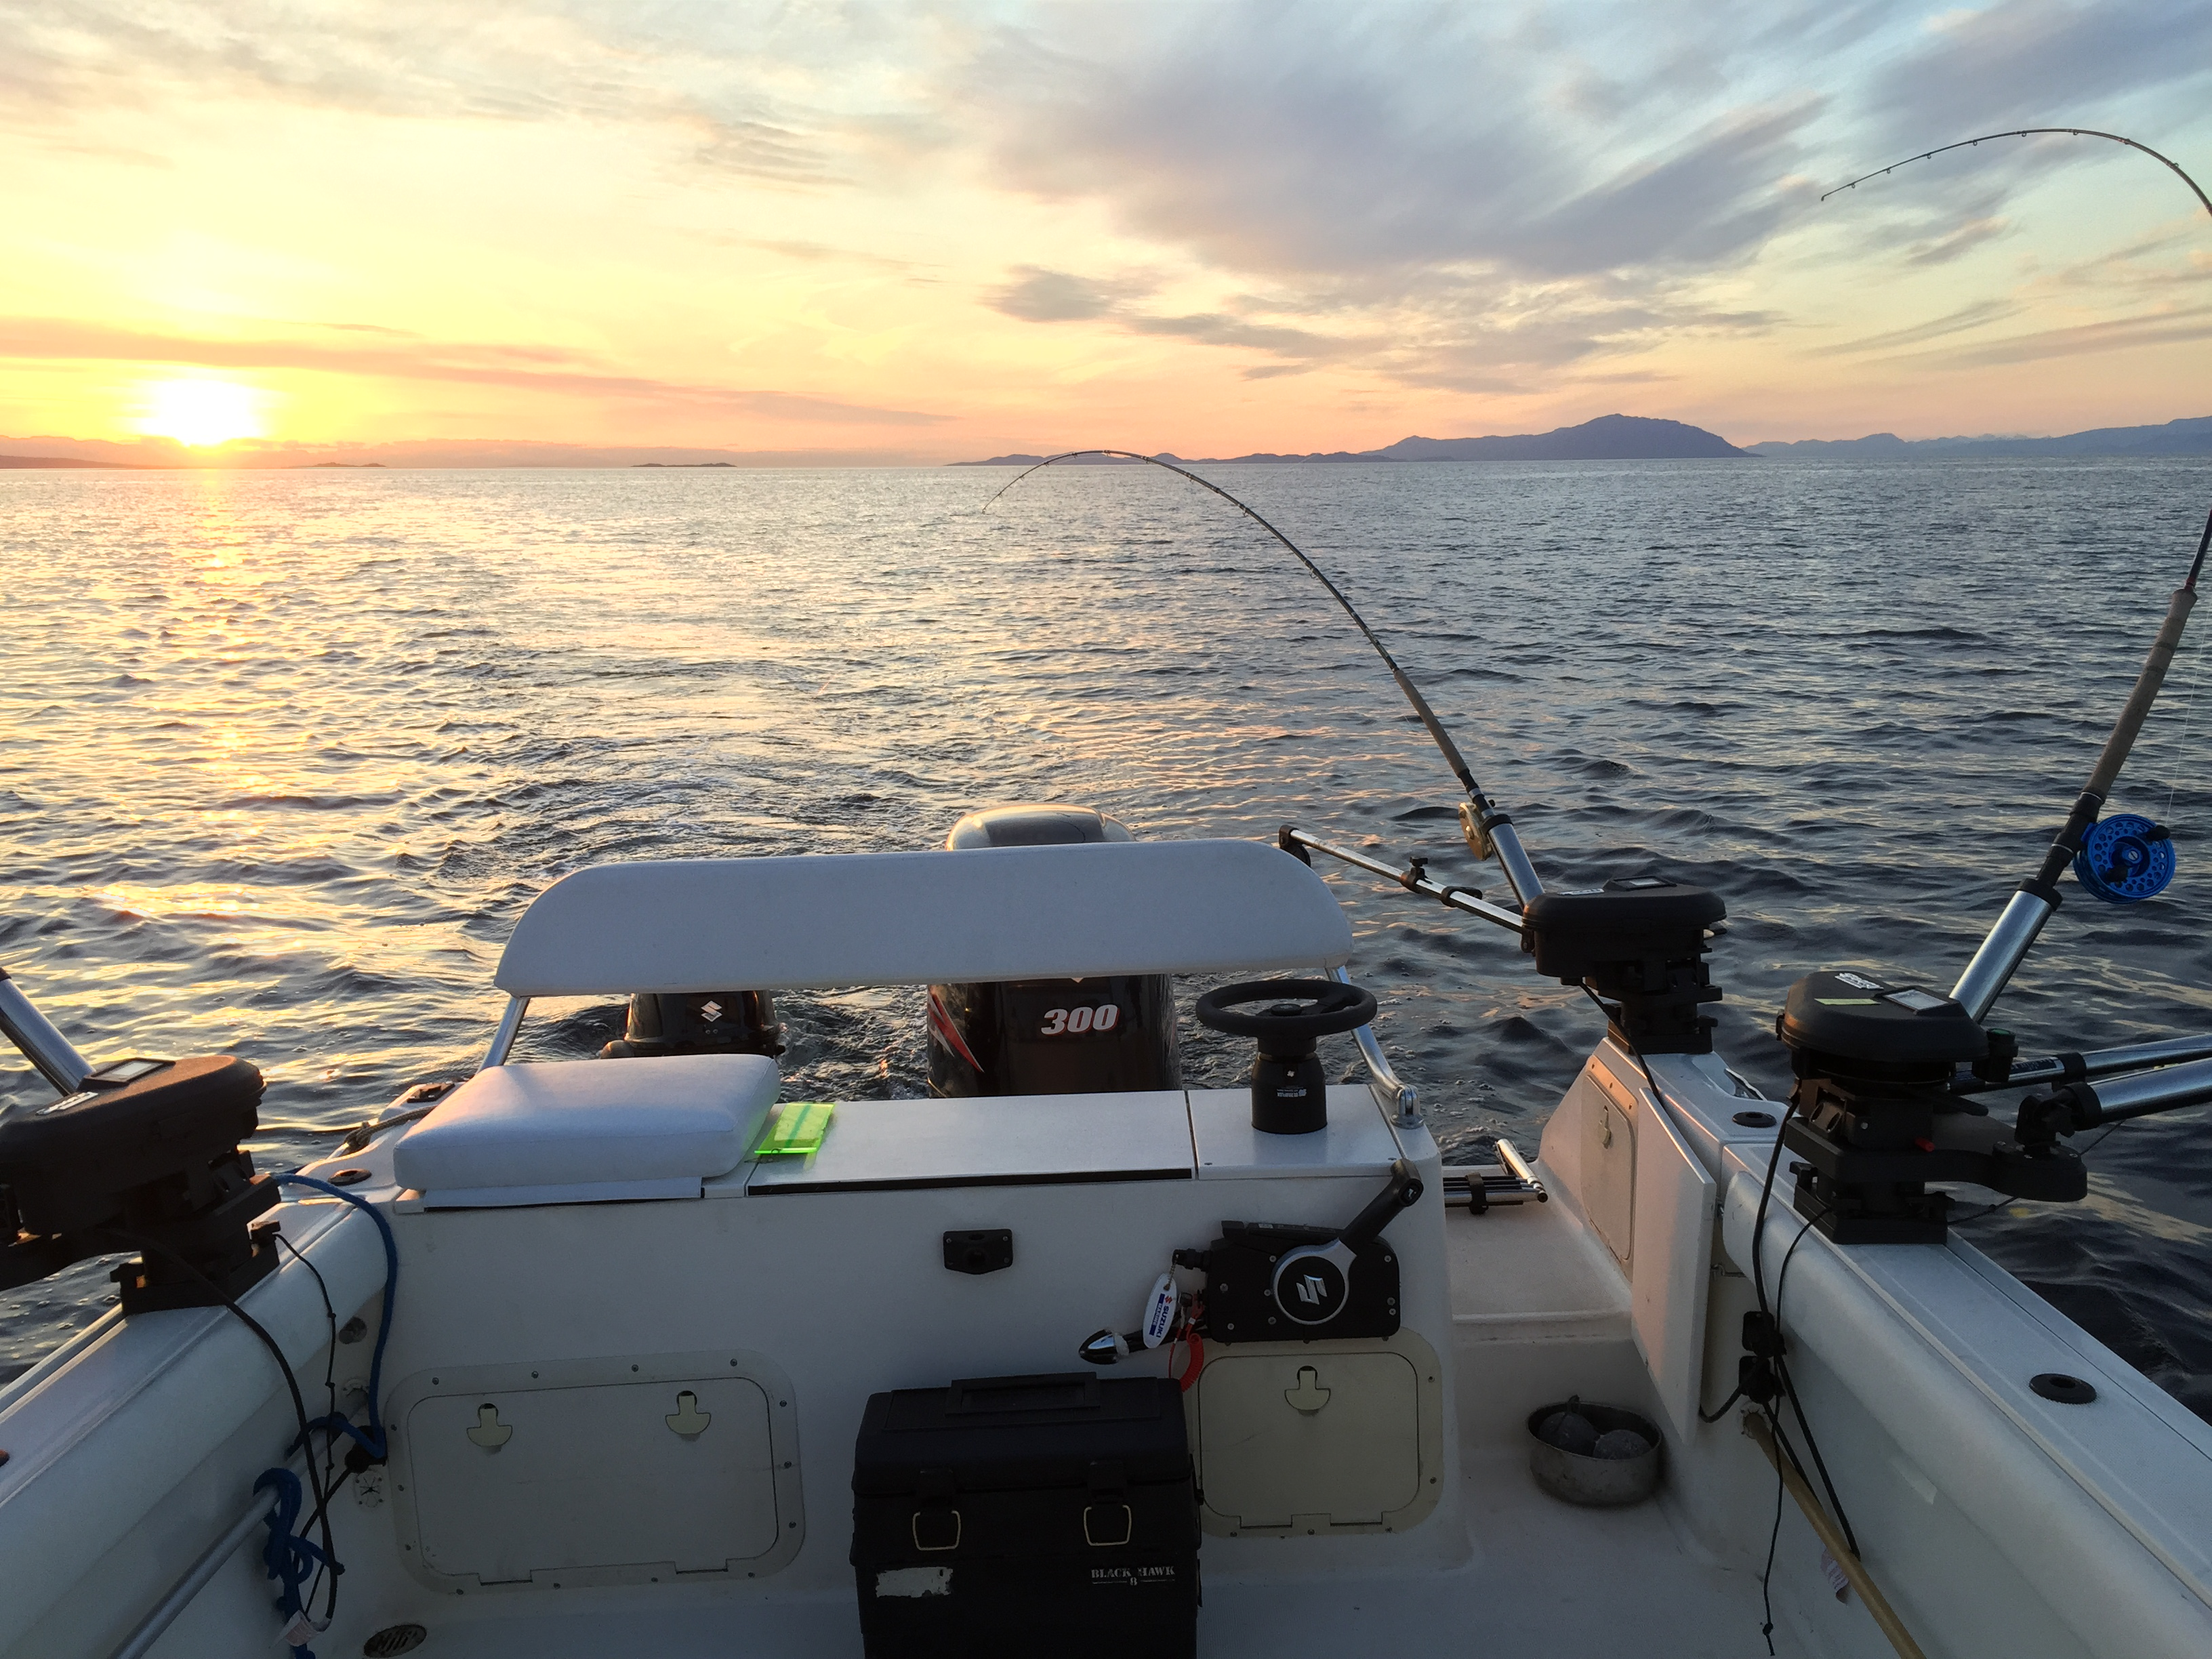 Pursuit boat Nanaimo fishing charter